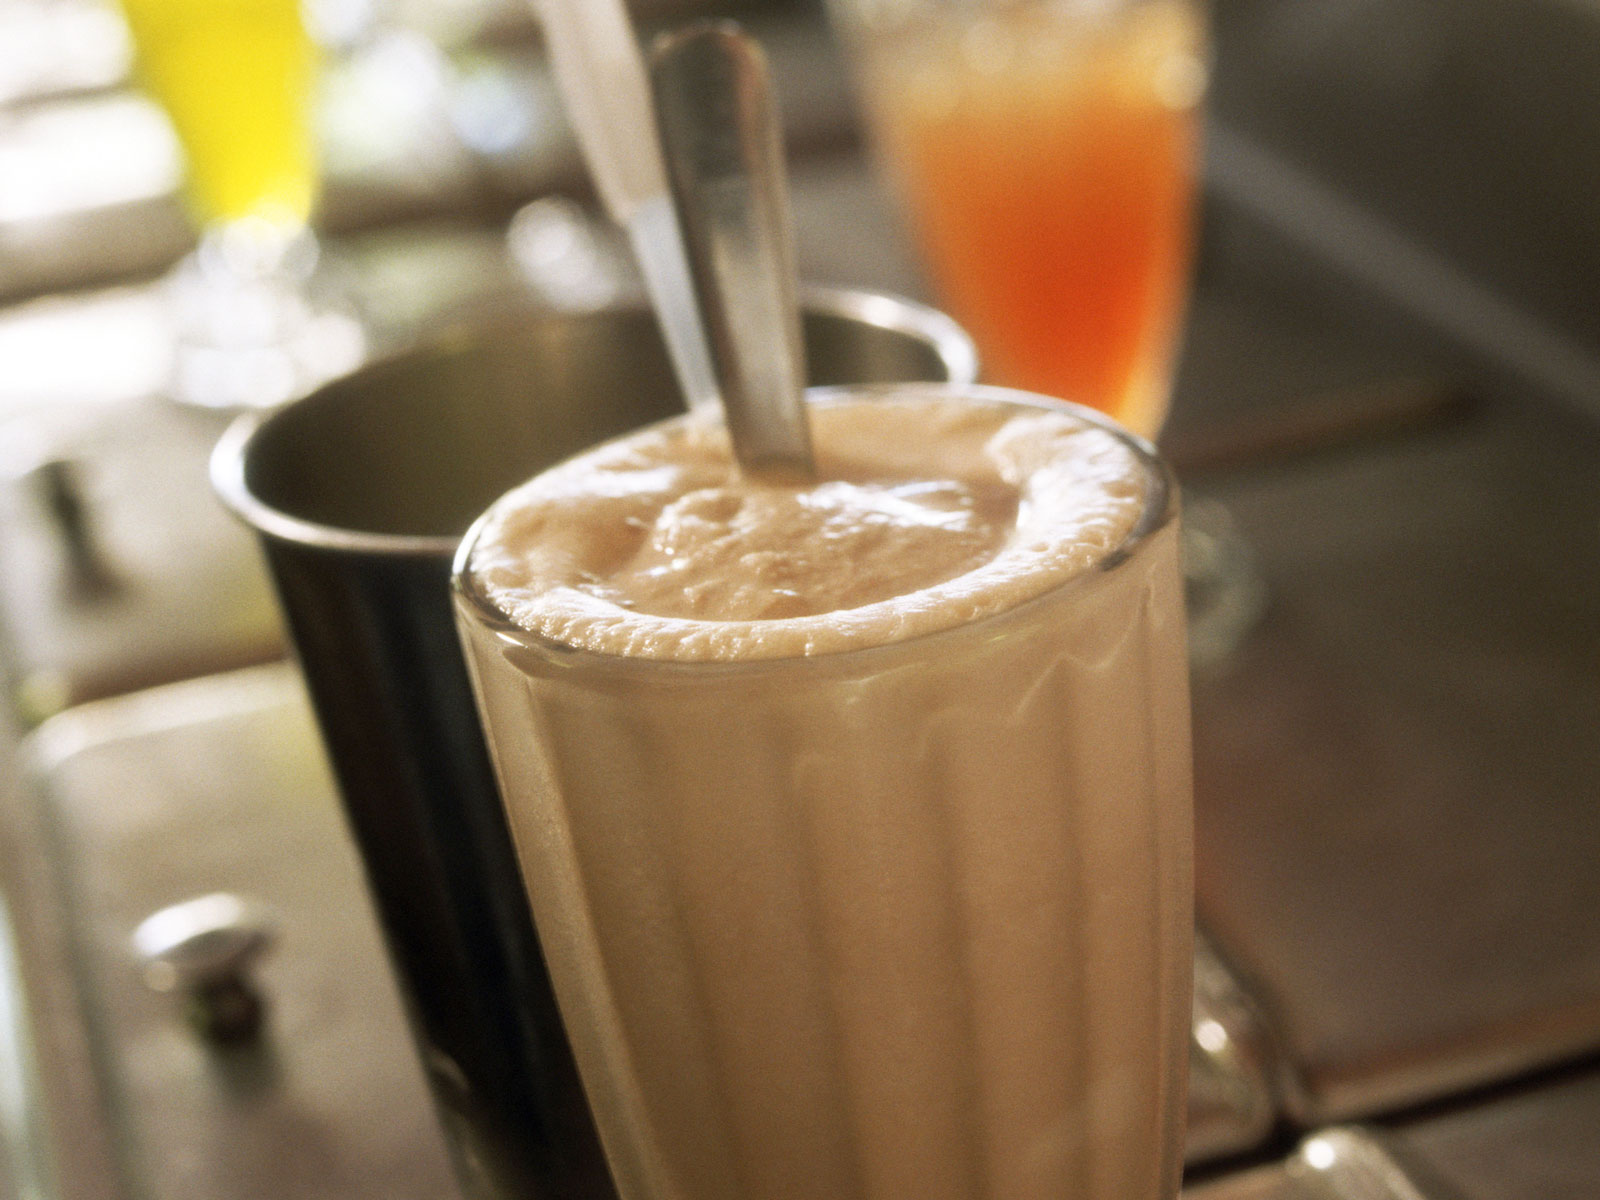 East Village Residents Are Rallying to Save an Egg Cream Institution